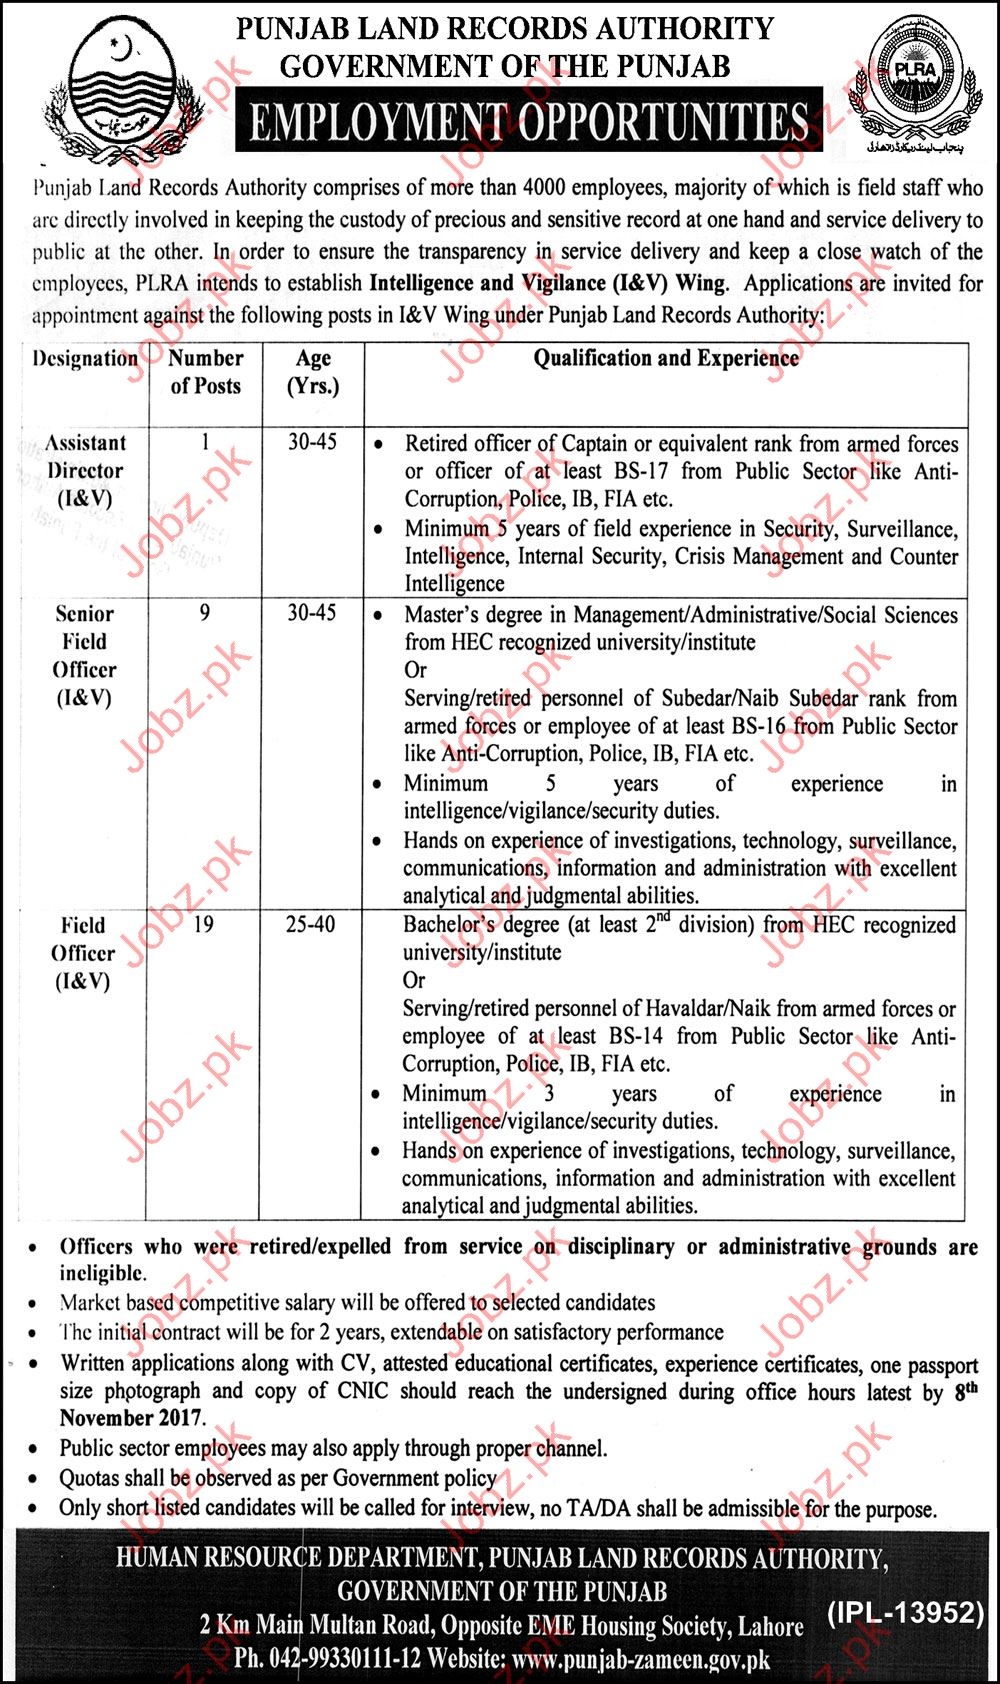 PLRA Jobs 2017 Punjab Land Records Authority